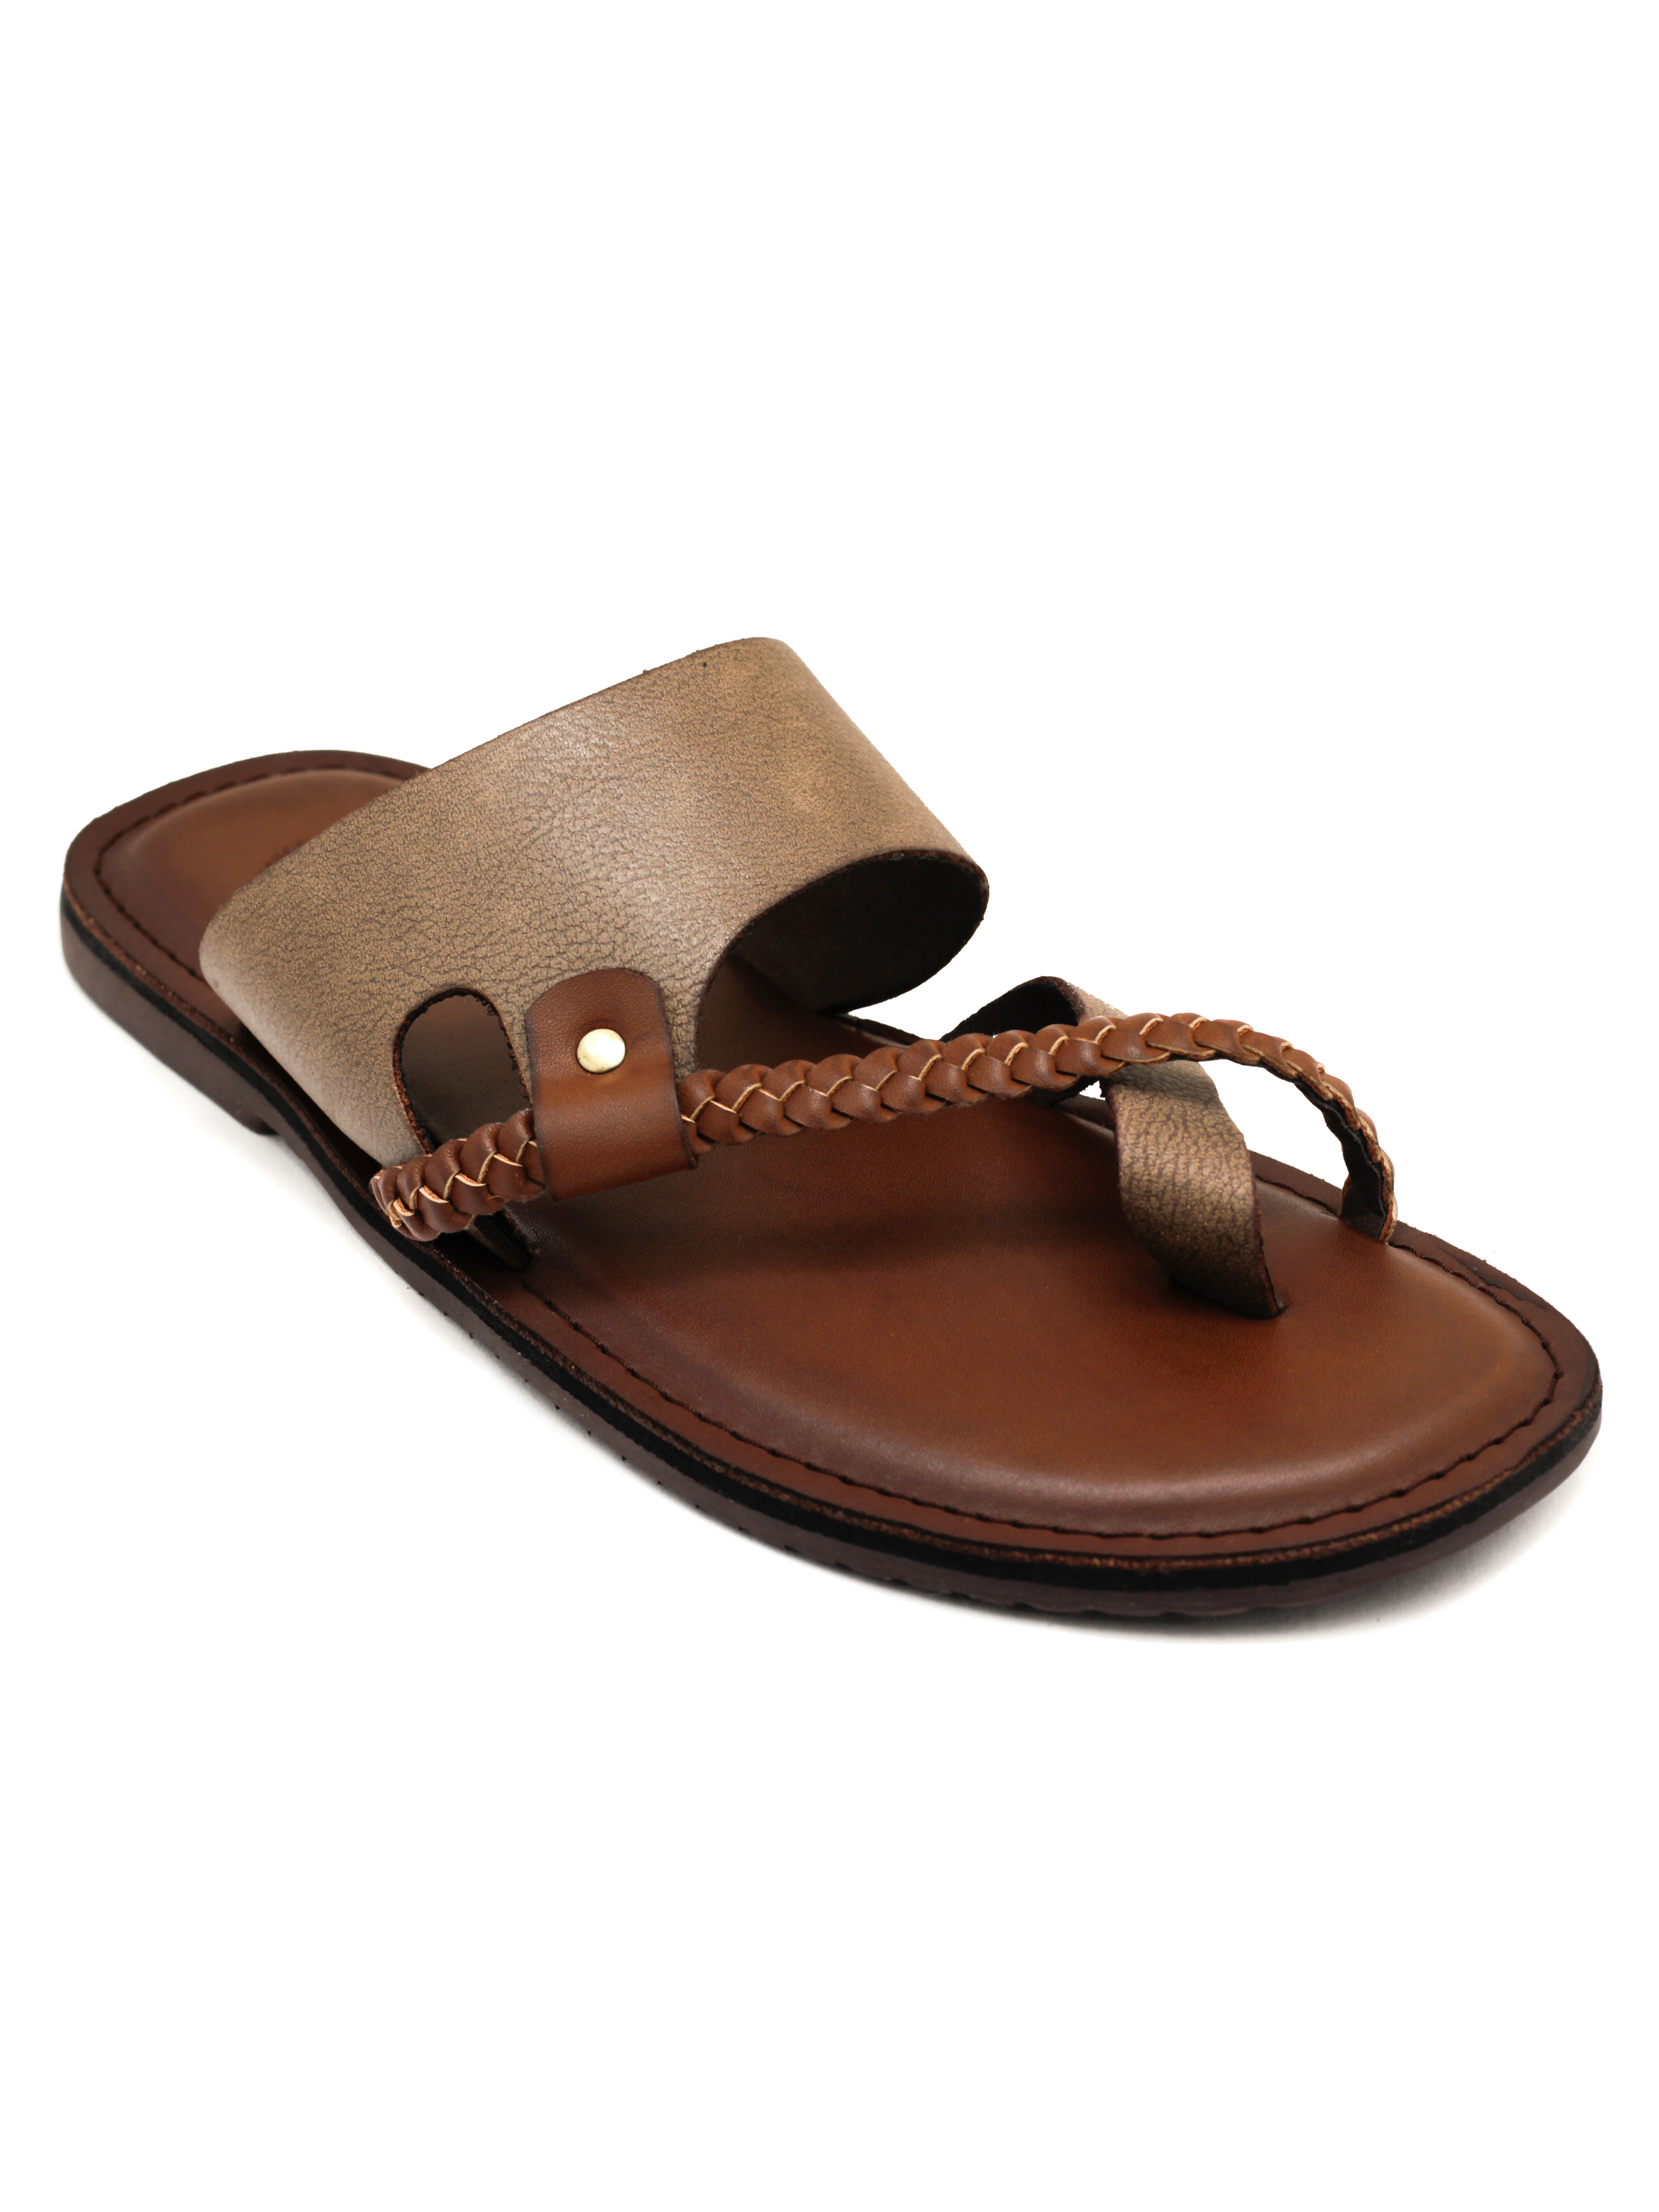 Trends & Trades | Mens Brown Sandals